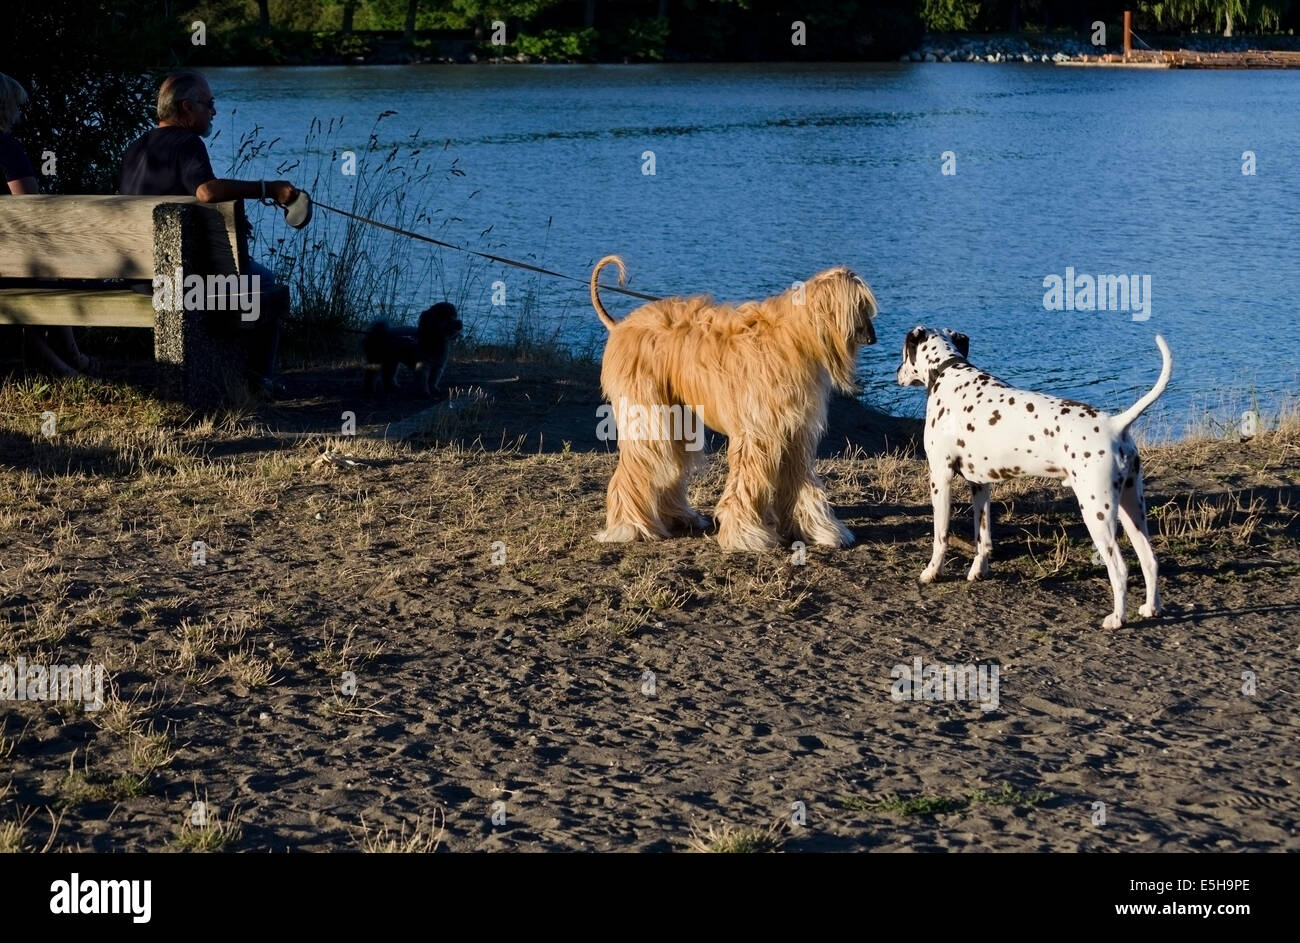 Afghan hound greets Dalmatian dog in park by a river.  Dogs socializing. - Stock Image